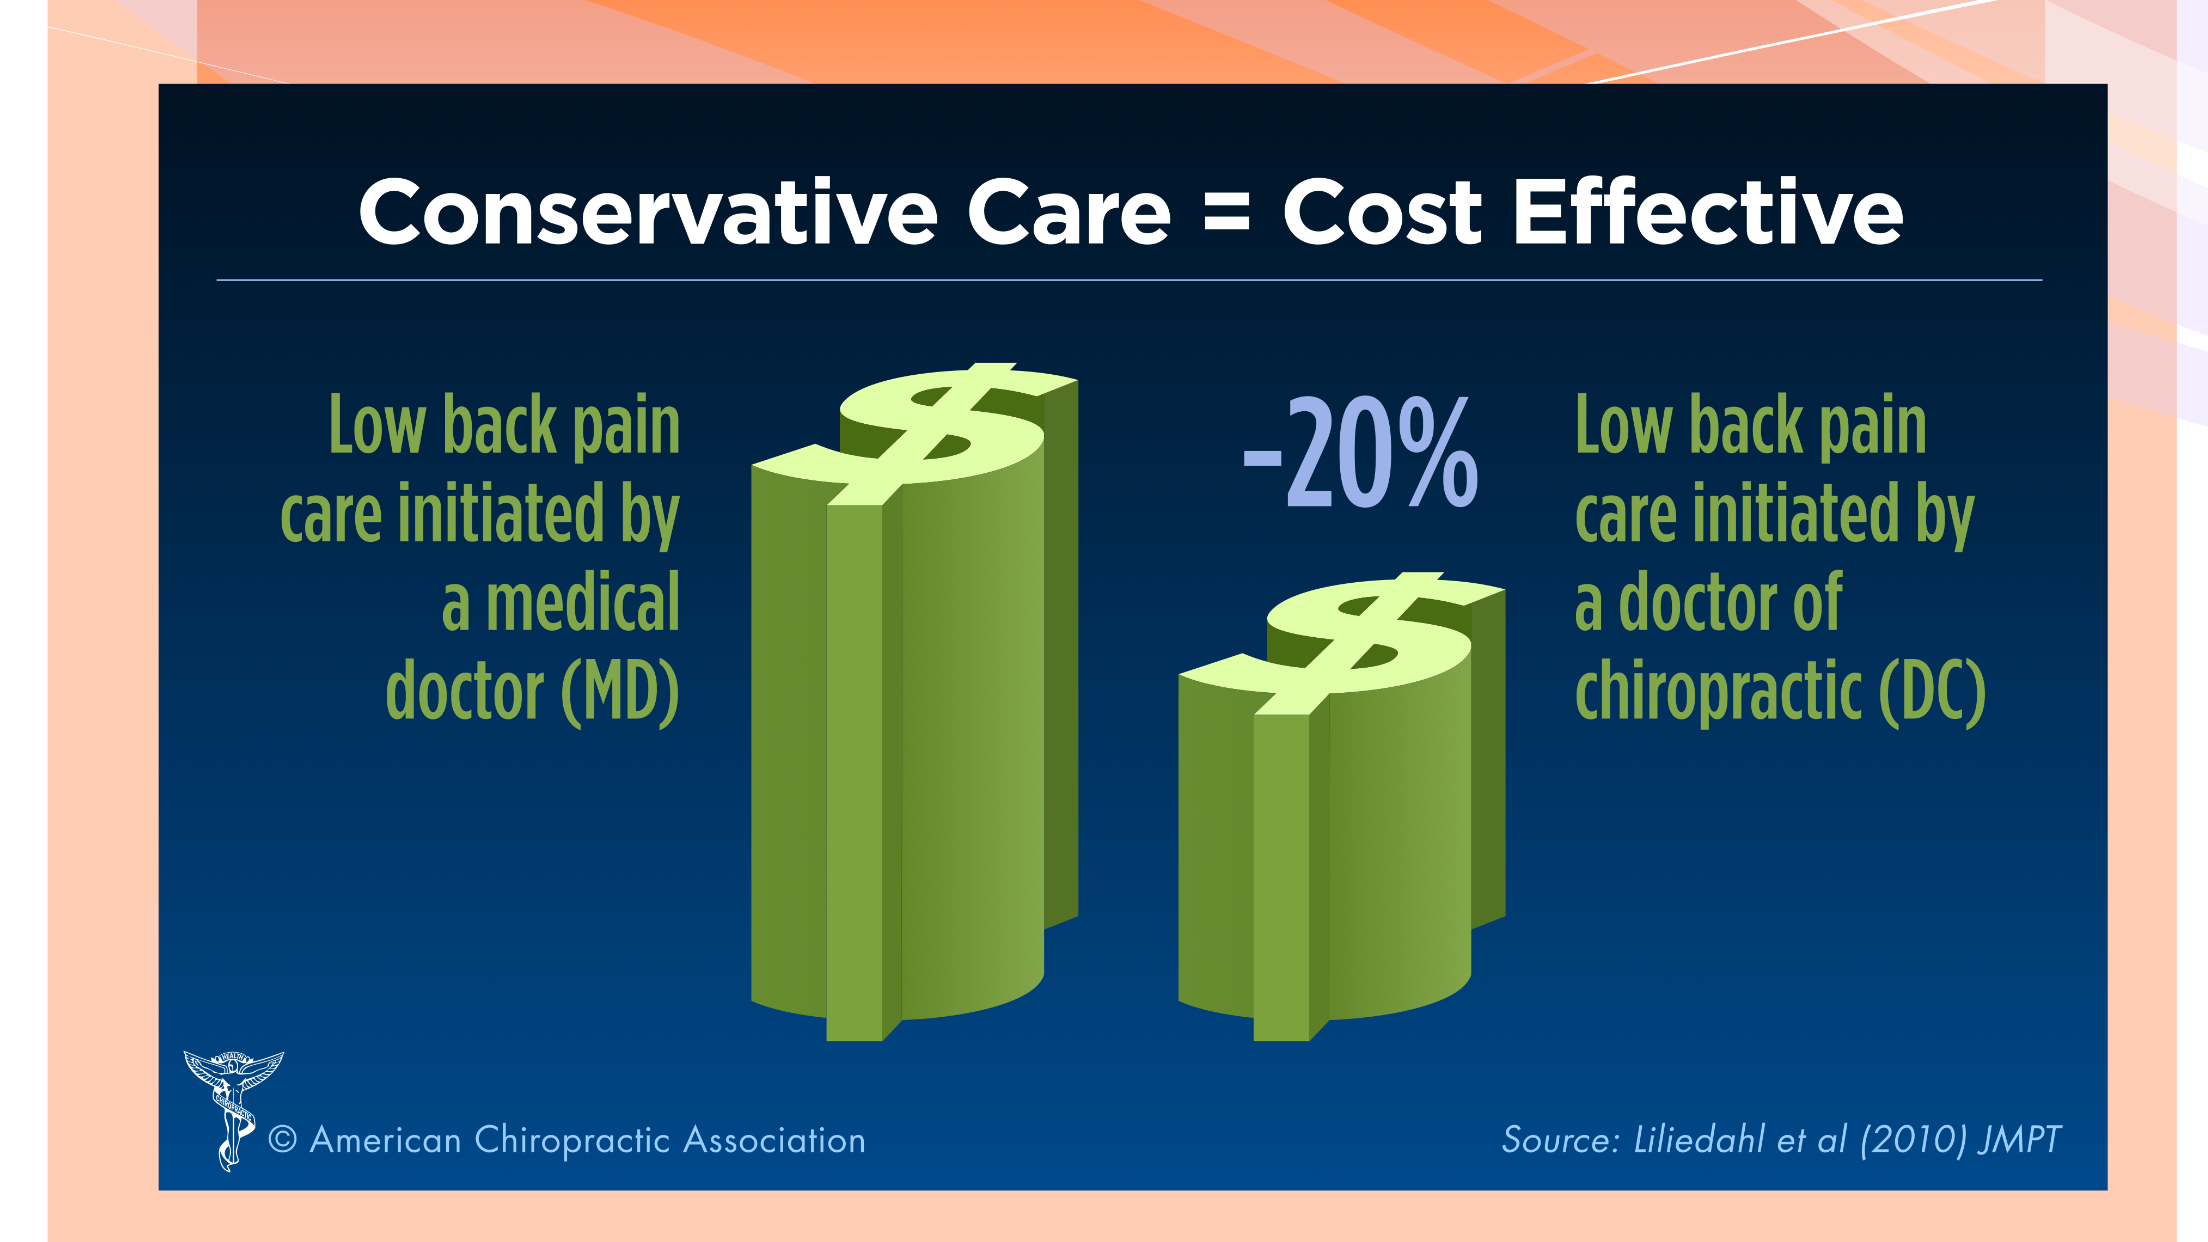 Save money & get better by going to a chiropractor when you experience low back pain.